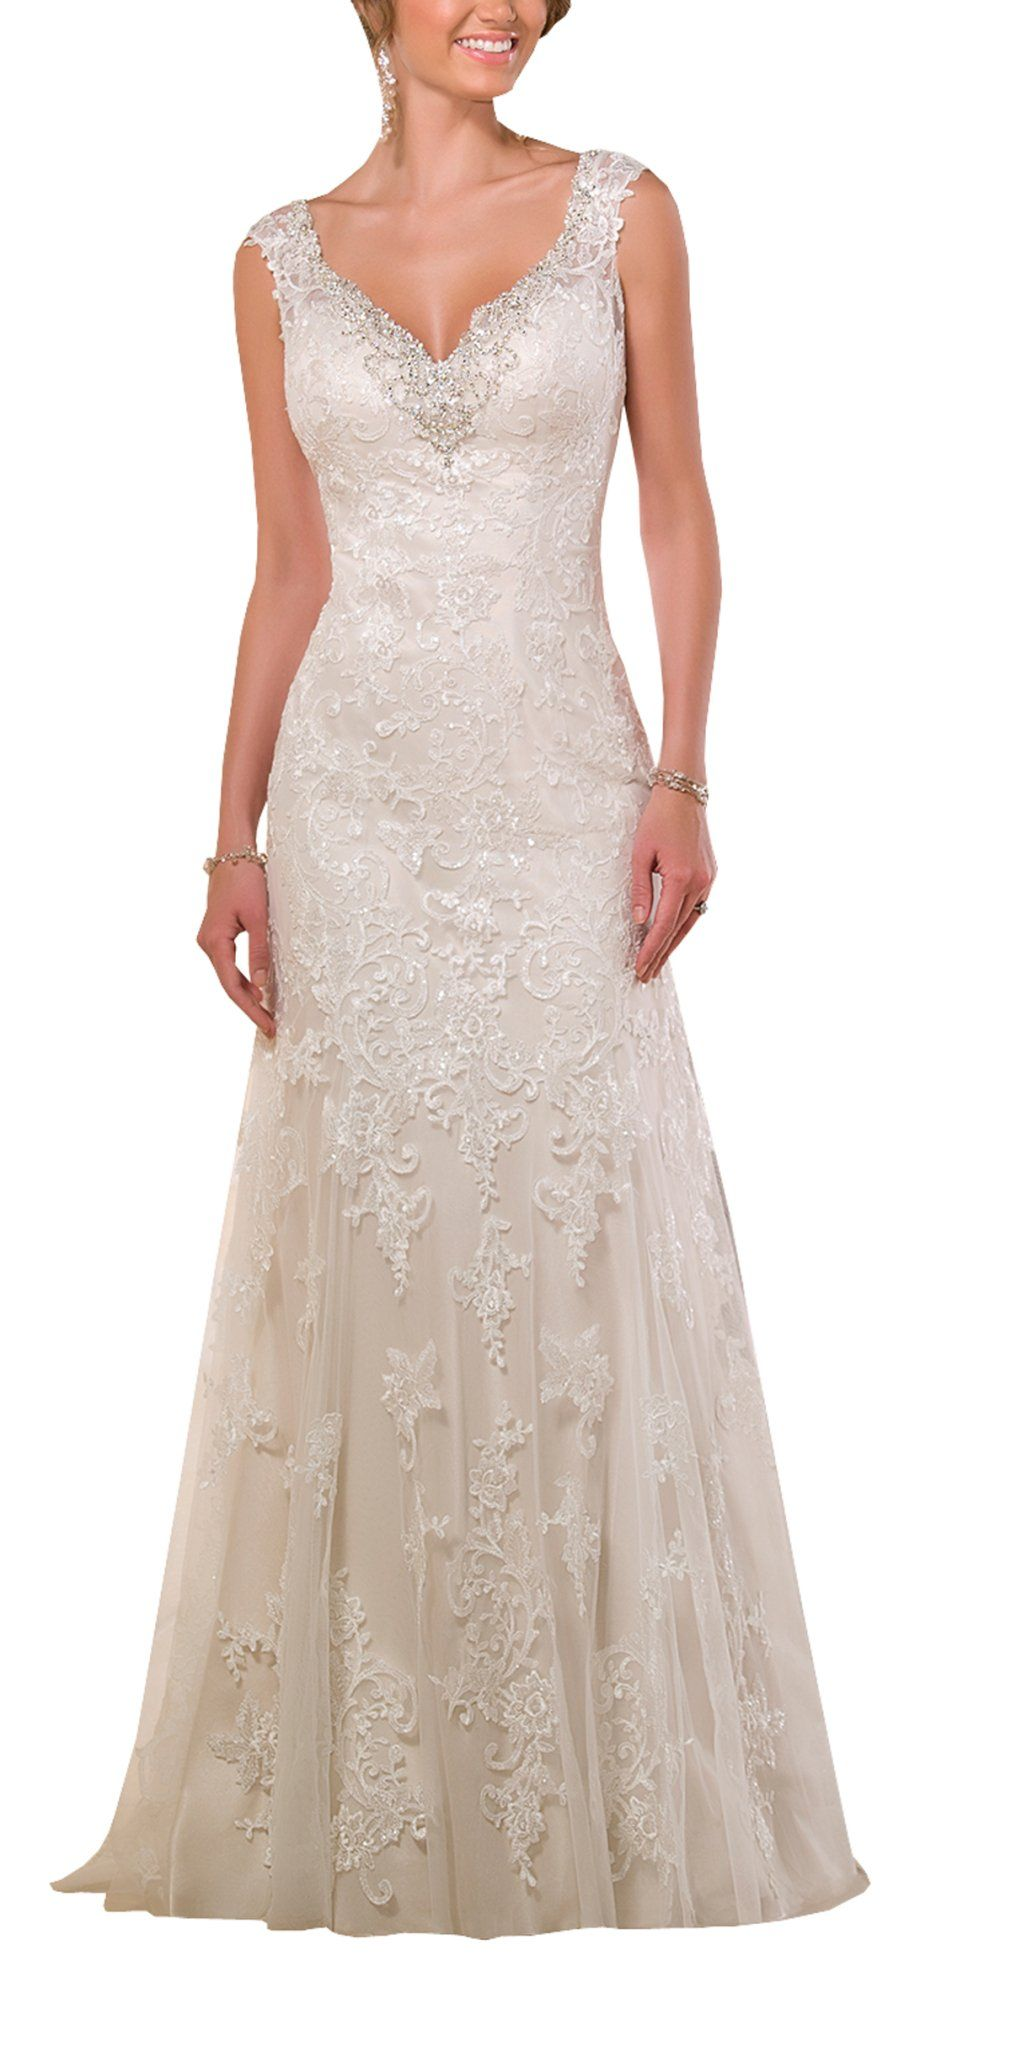 Harshori sweetheart neckline lace tulle over satin wedding dress